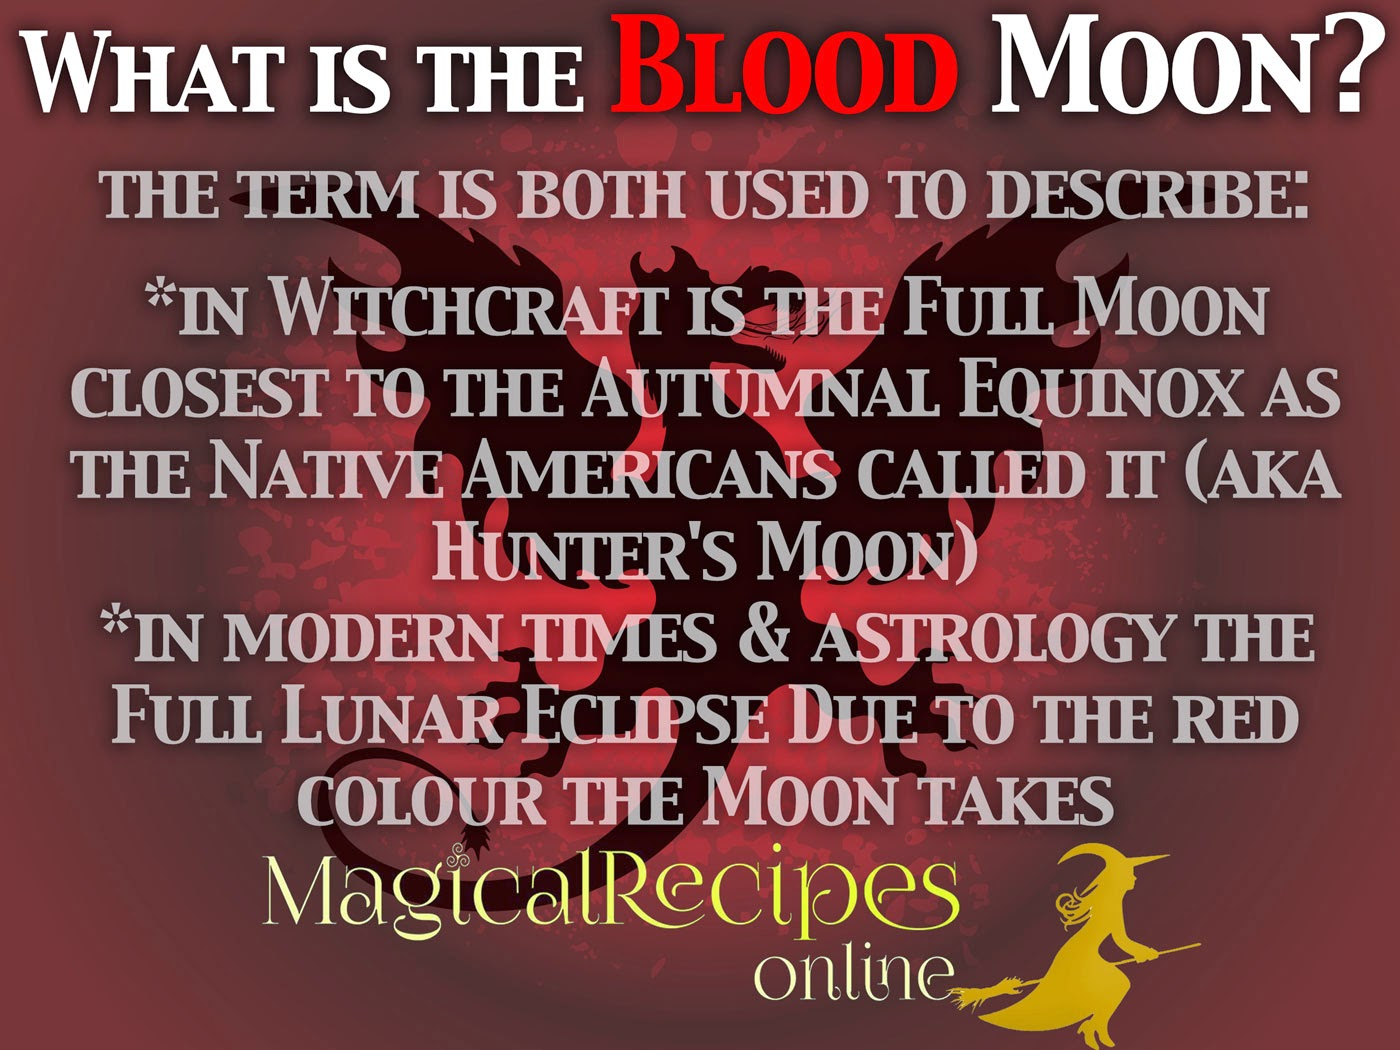 Red moon dates